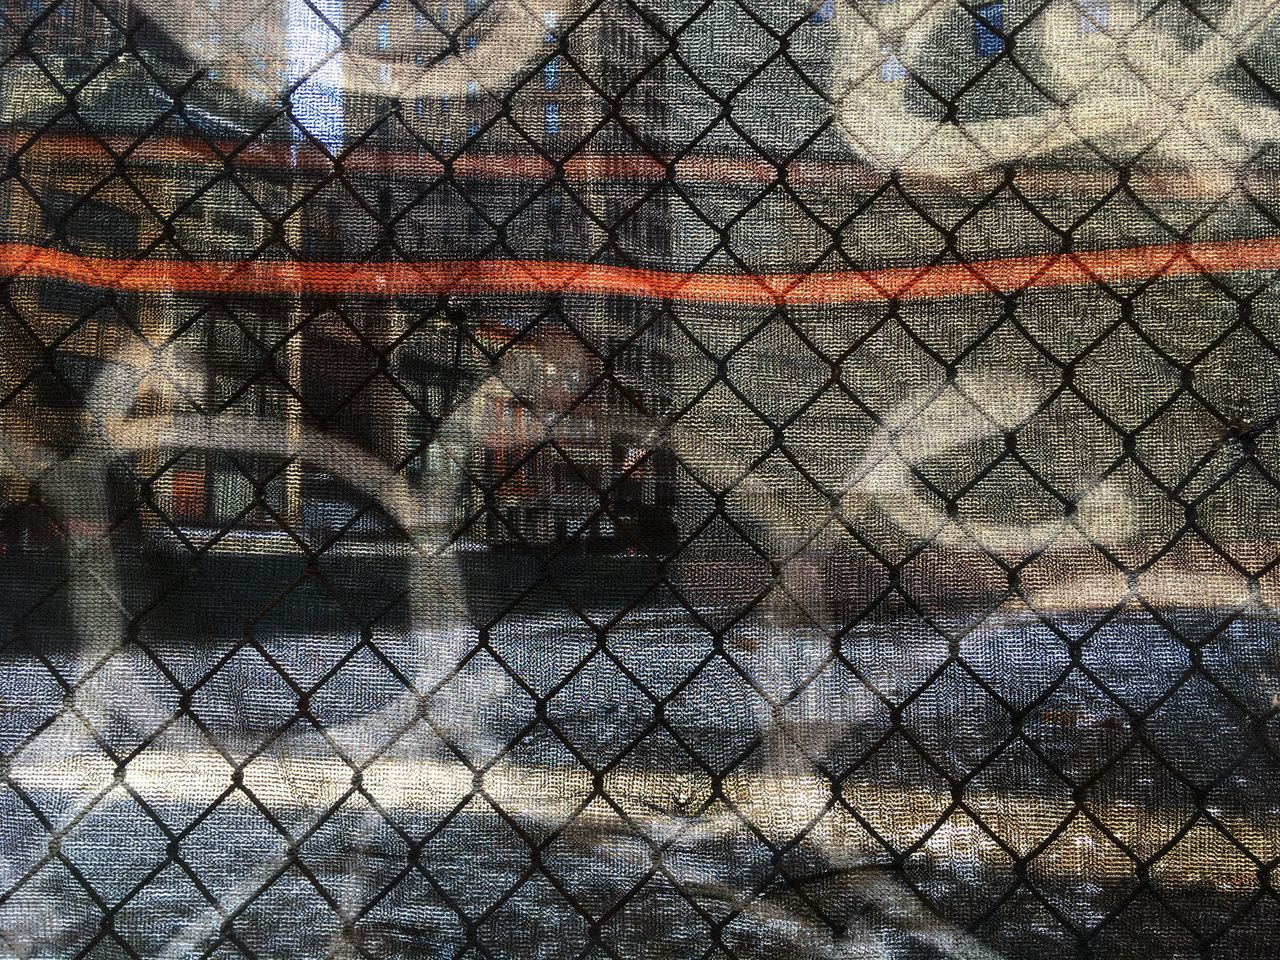 Chainlink Fence Fence Safety Protection Metal Outdoors Day Real People NYC Graffiti Tags New York Manhattan Chelsea Architecture New York City Urban Views